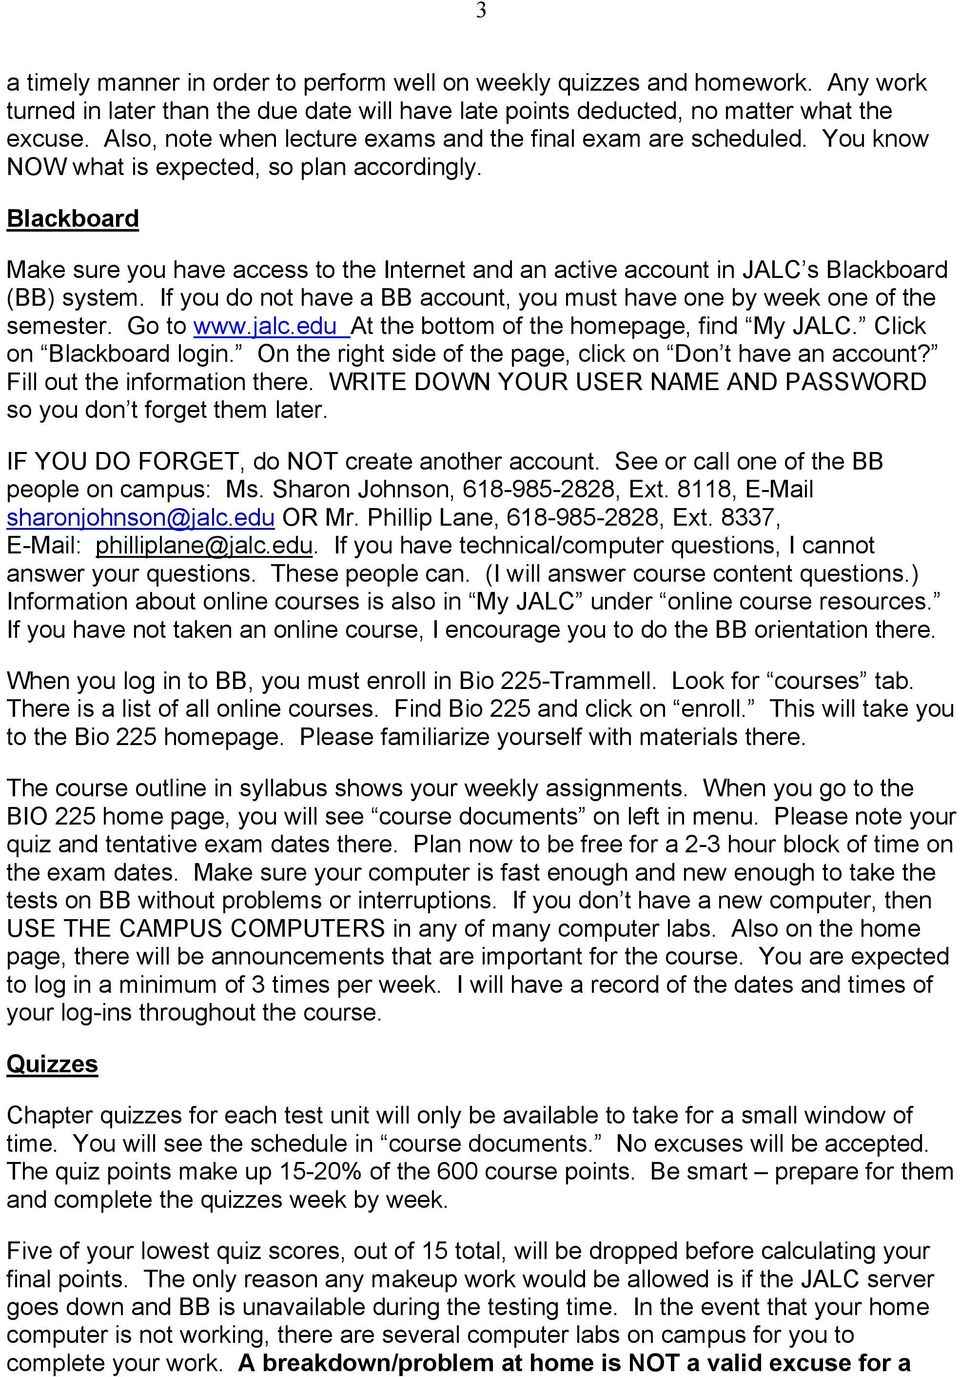 Blackboard Make sure you have access to the Internet and an active account in JALC s Blackboard (BB) system. If you do not have a BB account, you must have one by week one of the semester. Go to www.